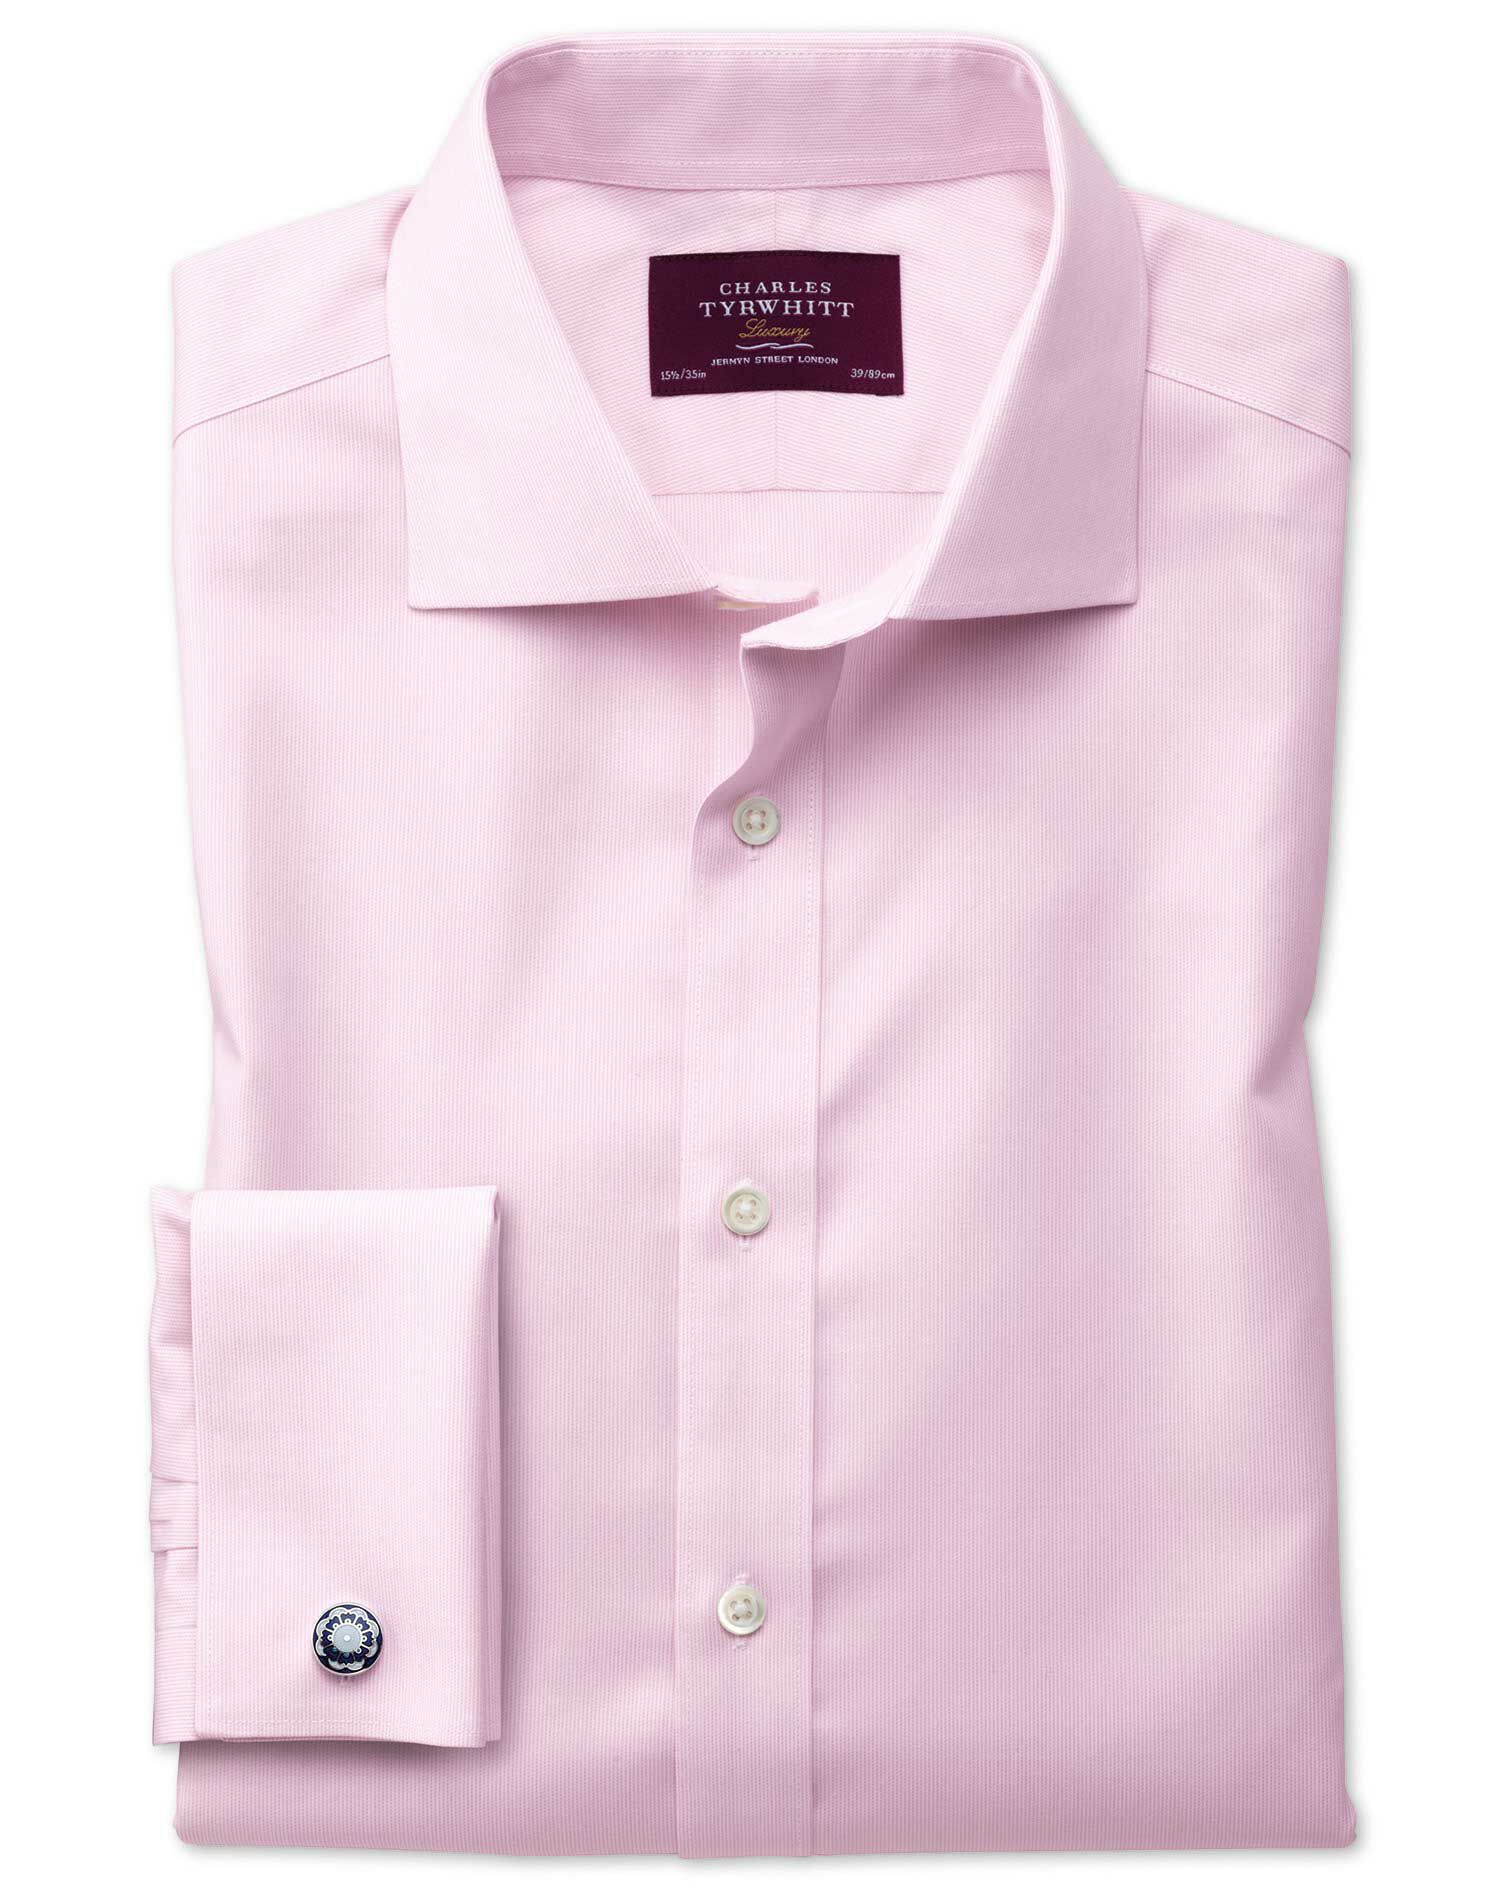 Slim Fit Non-Iron Semi-Cutaway Collar Luxury Stripe Pink Cotton Formal Shirt Double Cuff Size 15.5/3